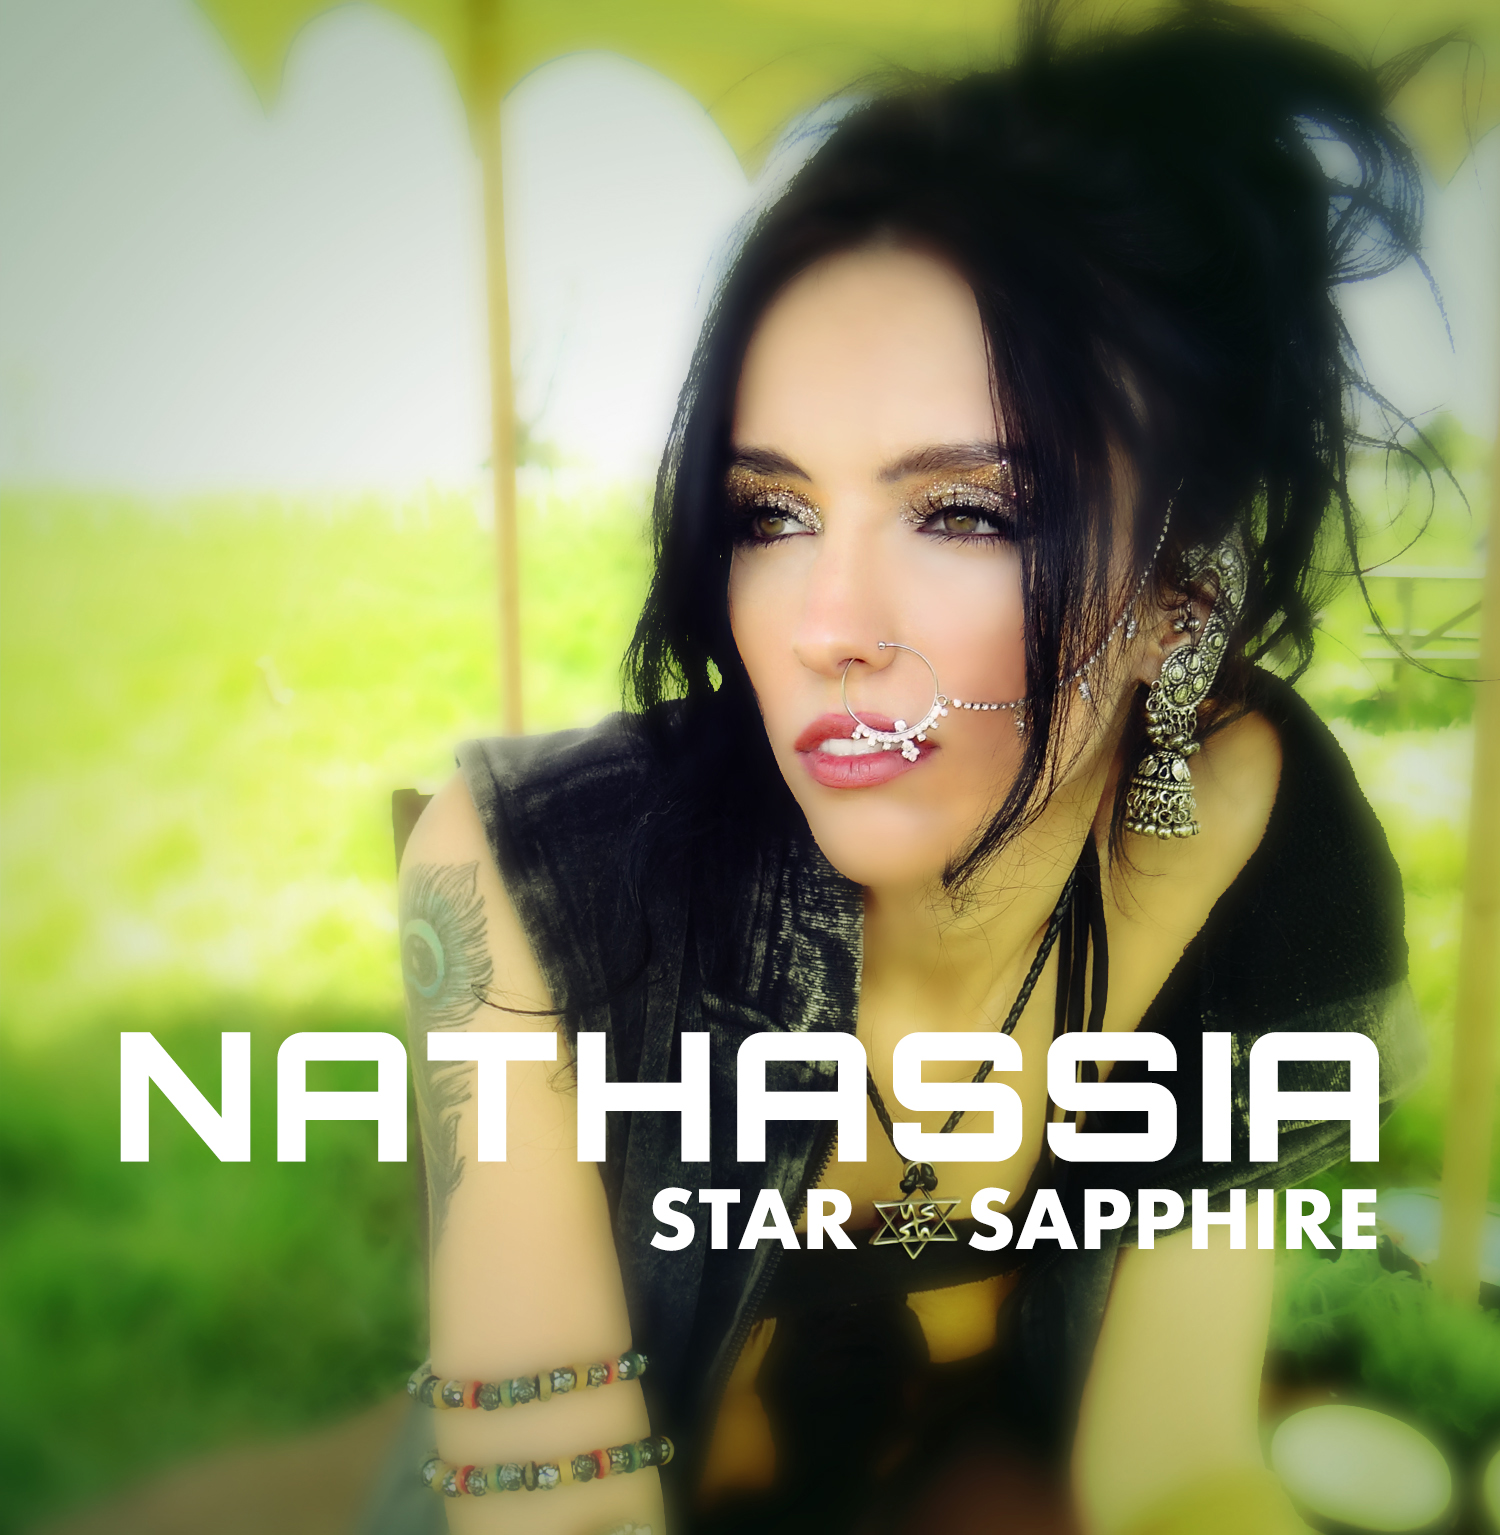 Star Sapphire - Single Artwork